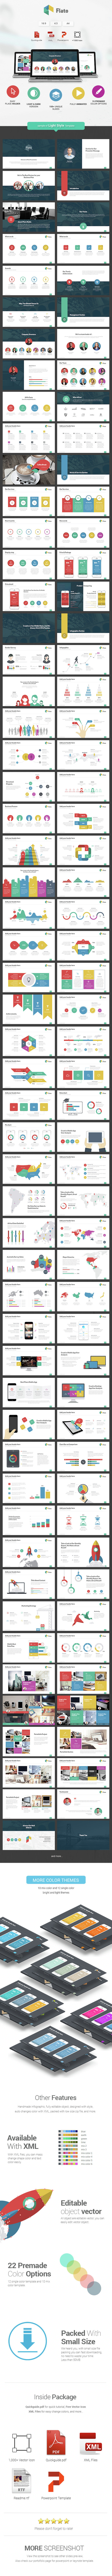 Flato - Powerpoint Template - PowerPoint Templates Presentation Templates